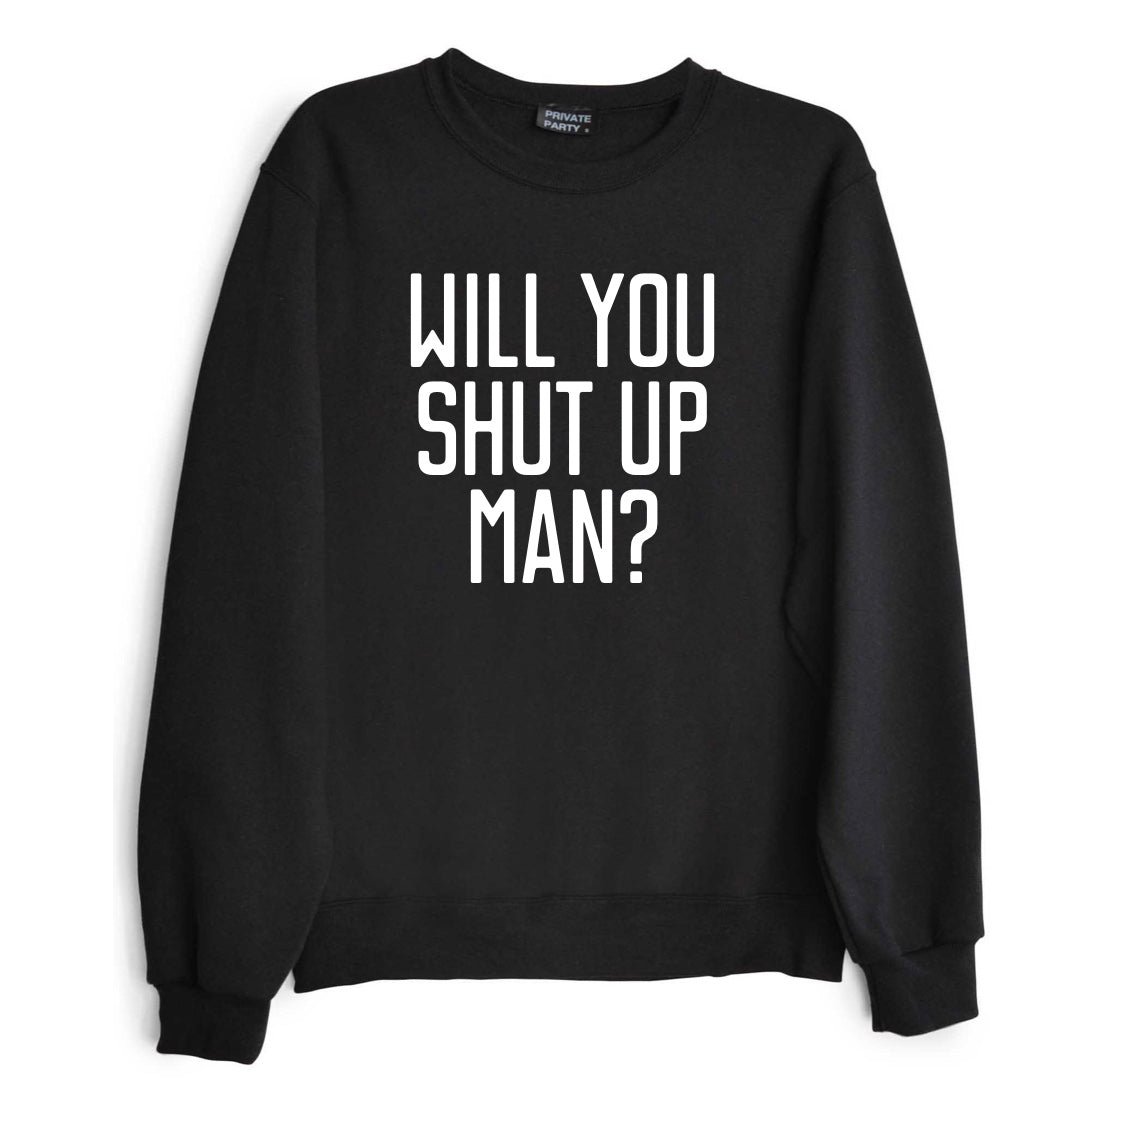 WILL YOU SHUT UP MAN? [UNISEX CREWNECK SWEATSHIRT]